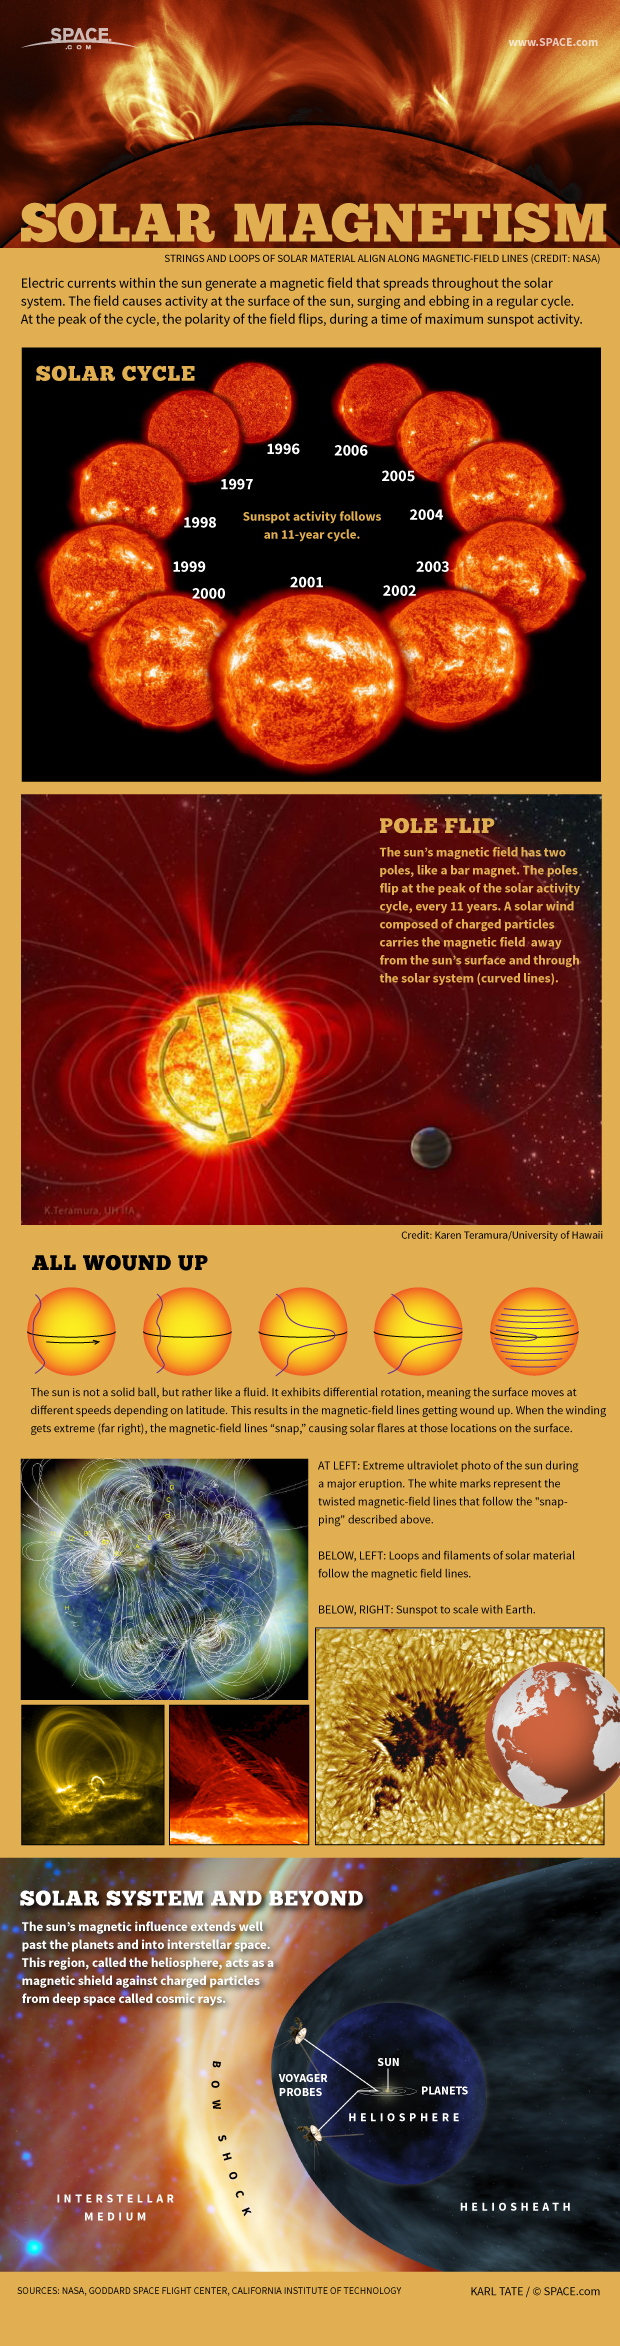 How the Sun's Magnetic Field Works (Infographic)